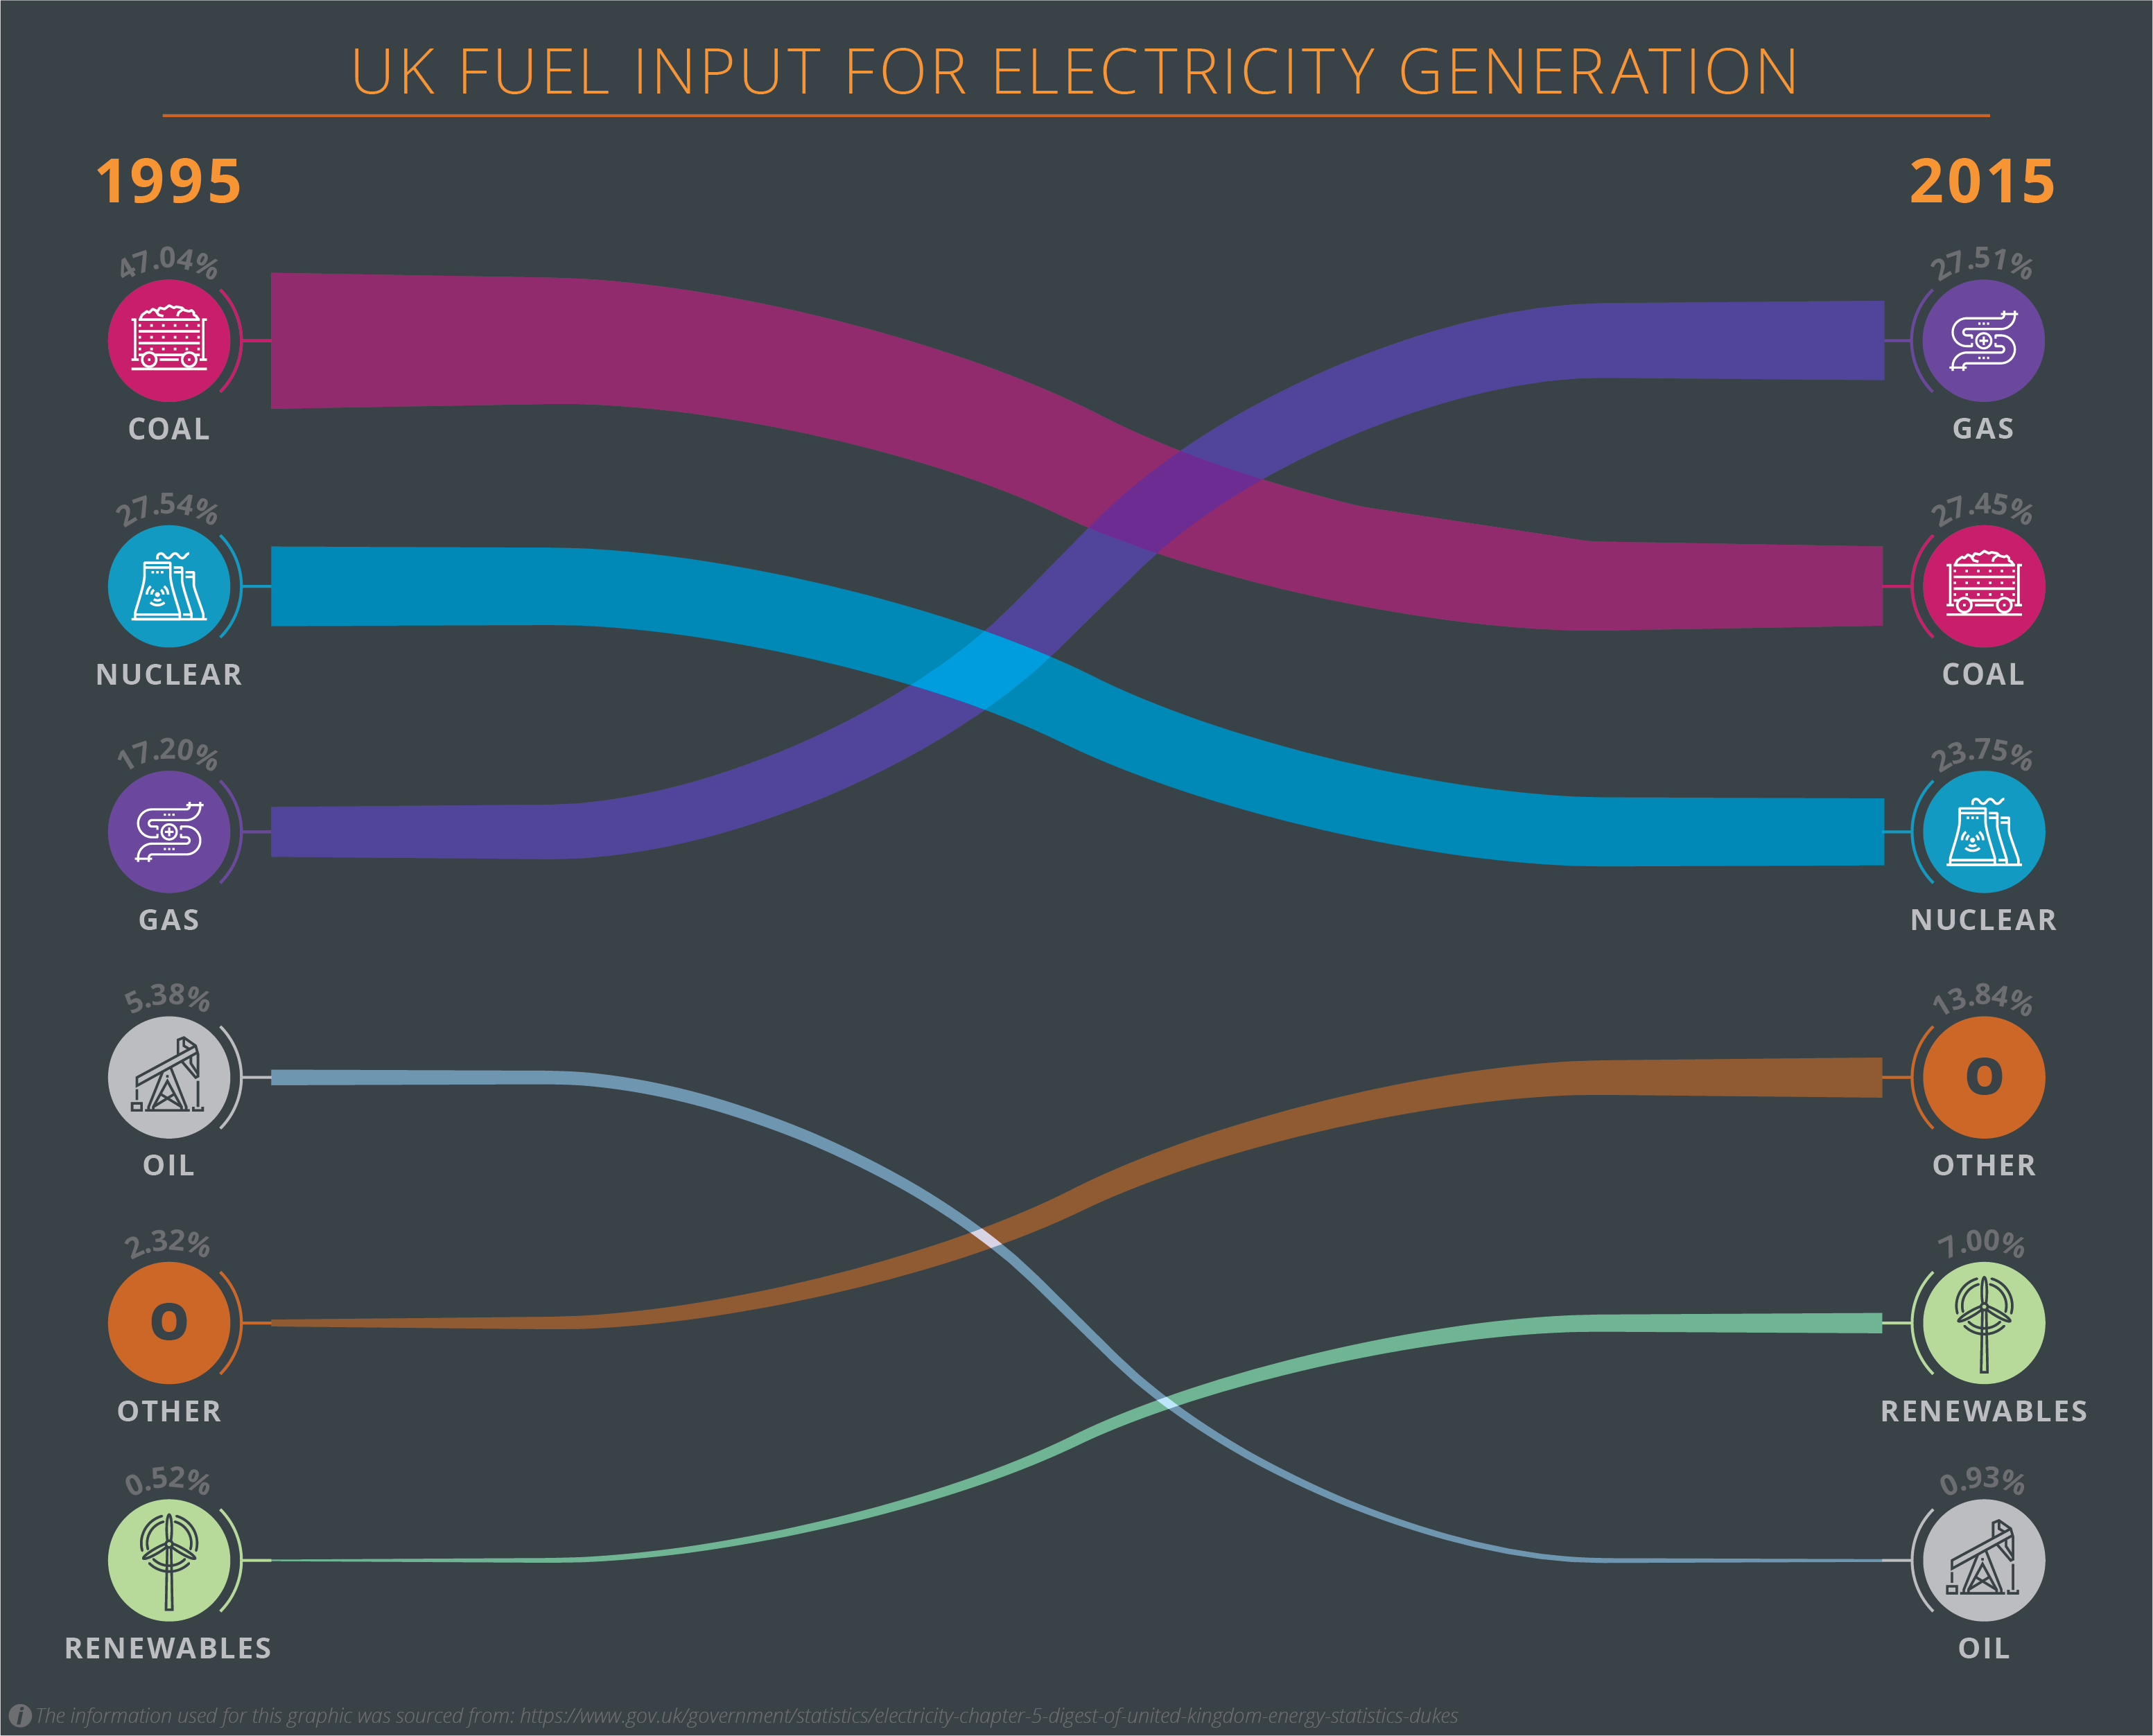 UK Fuel Input For Electricity Generation